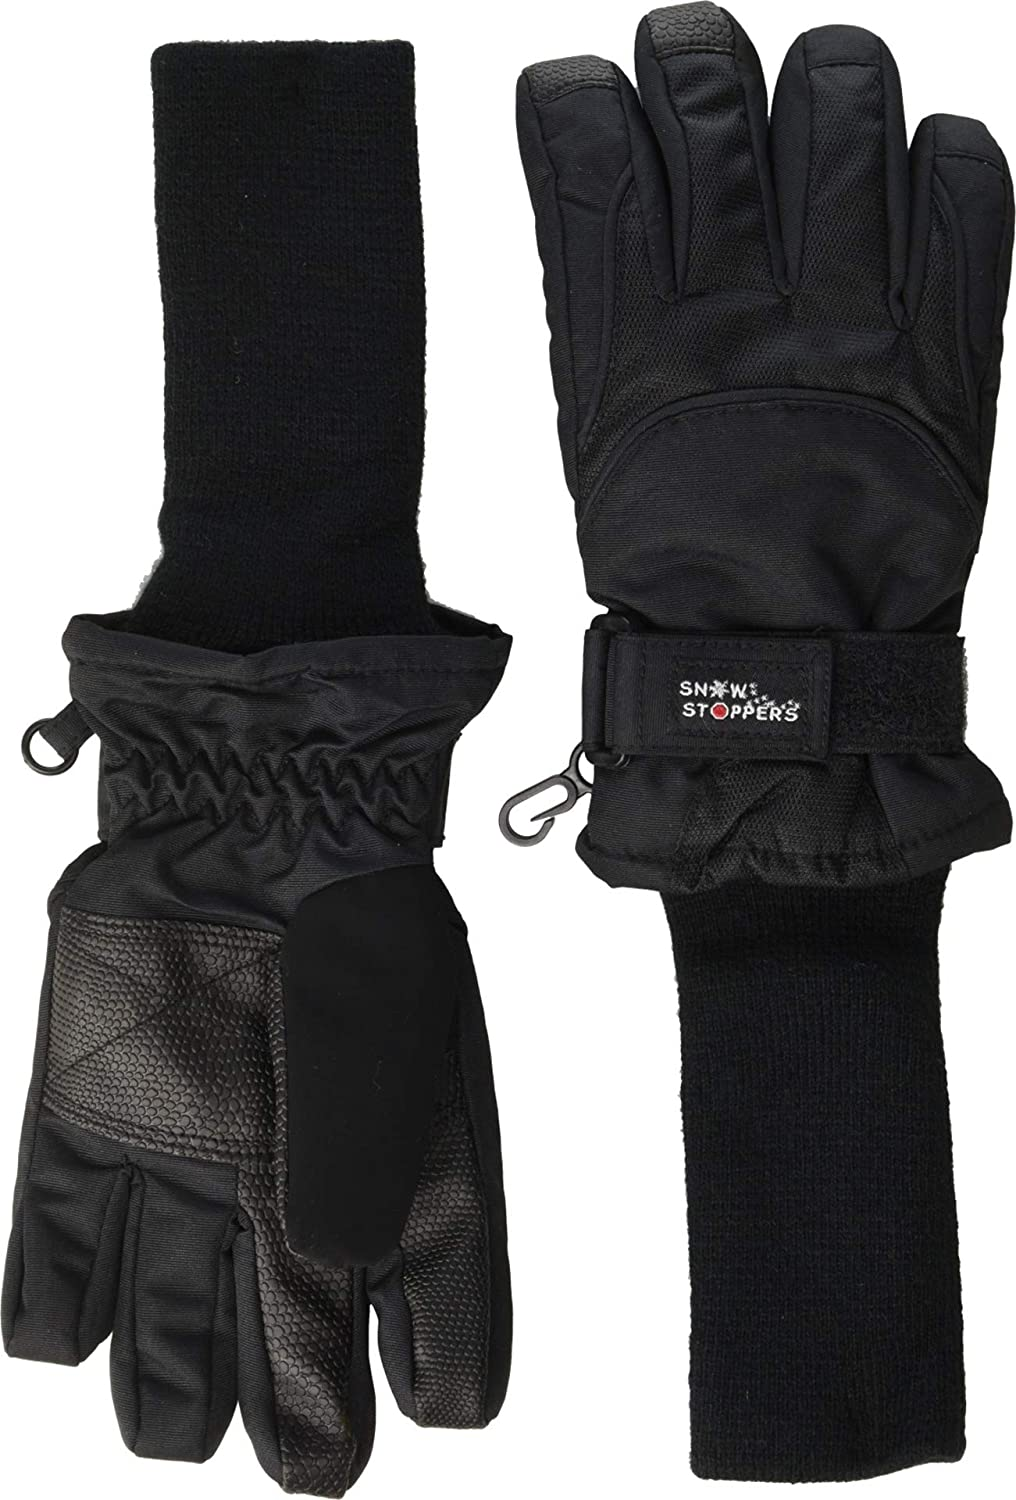 Tundra Boots Snowstoppers Gloves Max 59% OFF Medium - Black Max 77% OFF